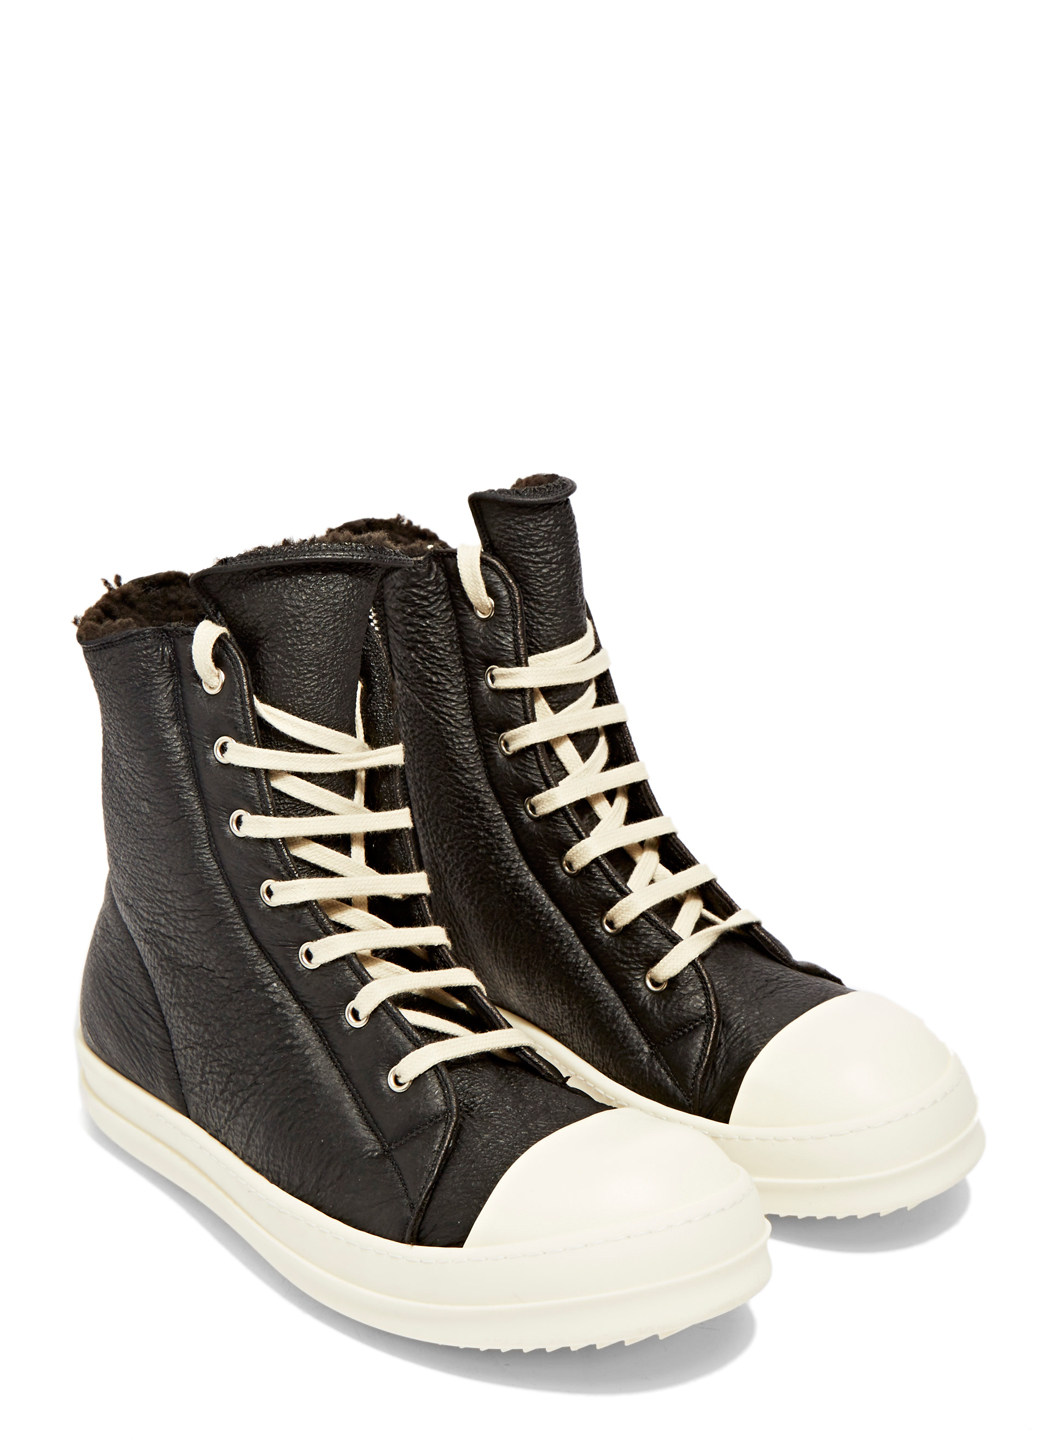 Rick Owens Shearling High-Top Sneakers